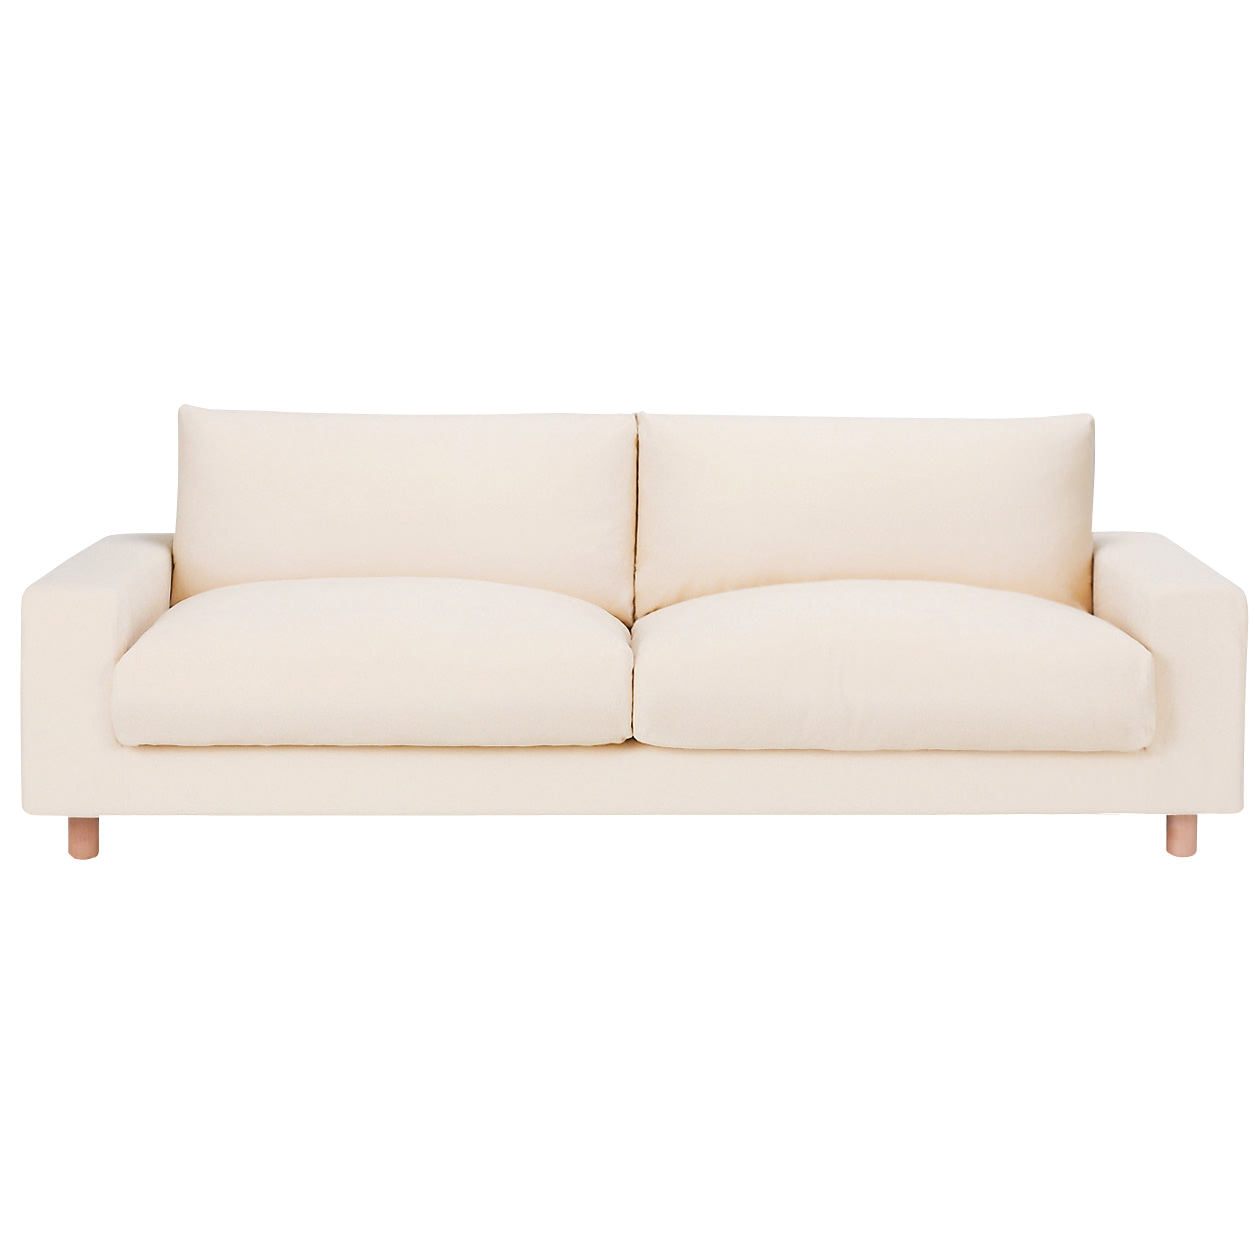 down feather sofa how to clean non removable covers 3s cushion w220 d88 5 h79 5cm muji